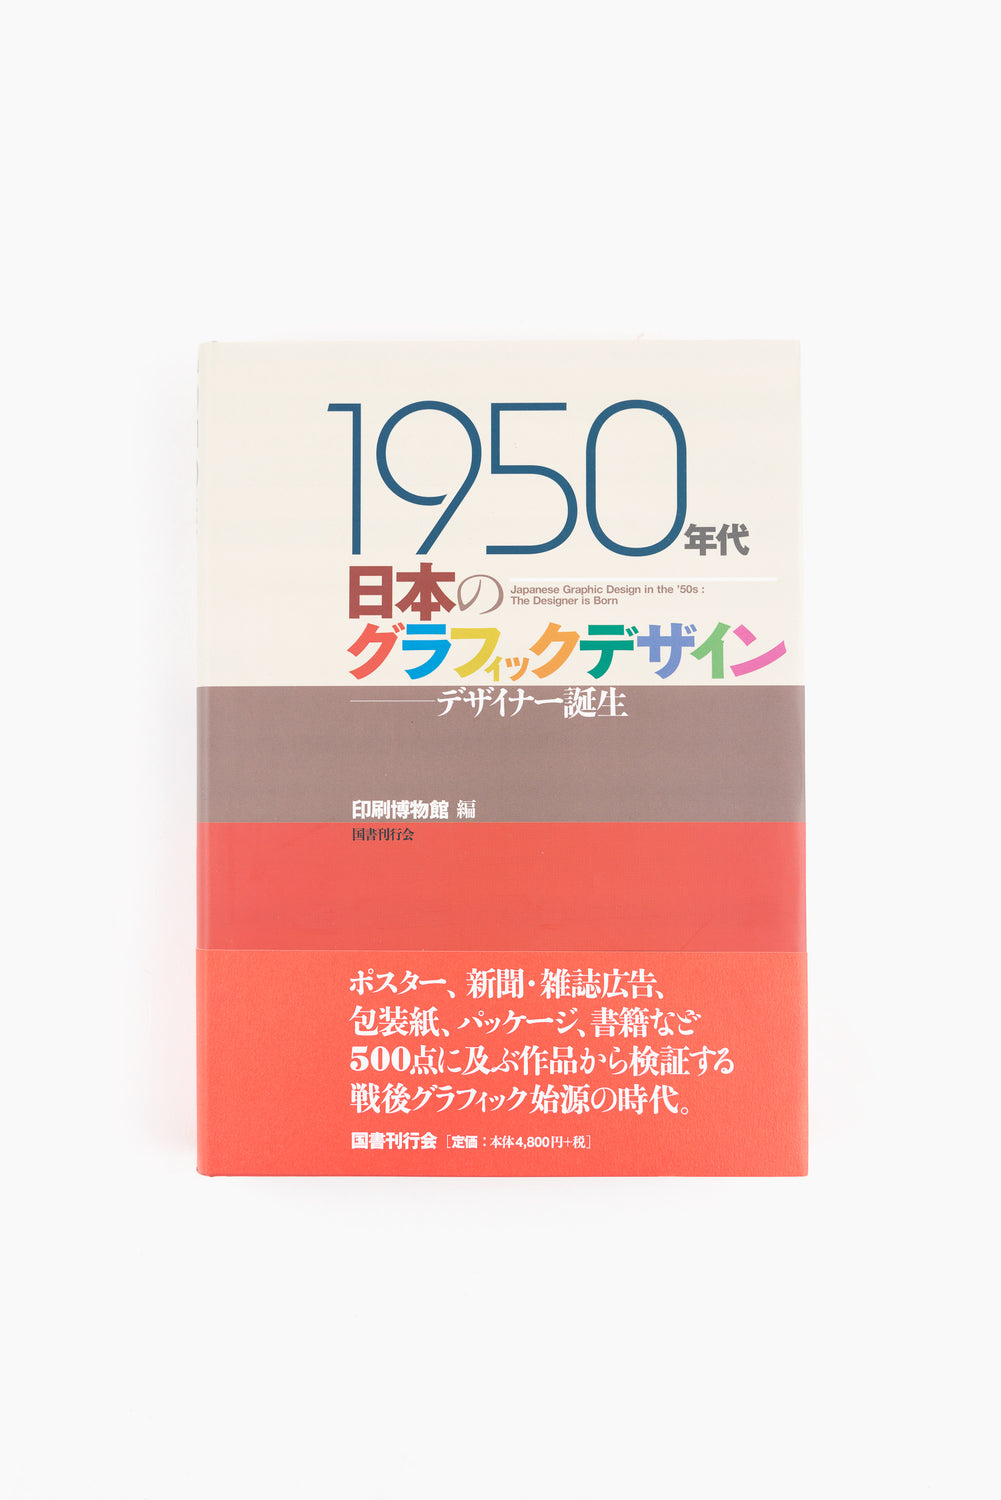 1950-Japanese Graphic Design in the 50s